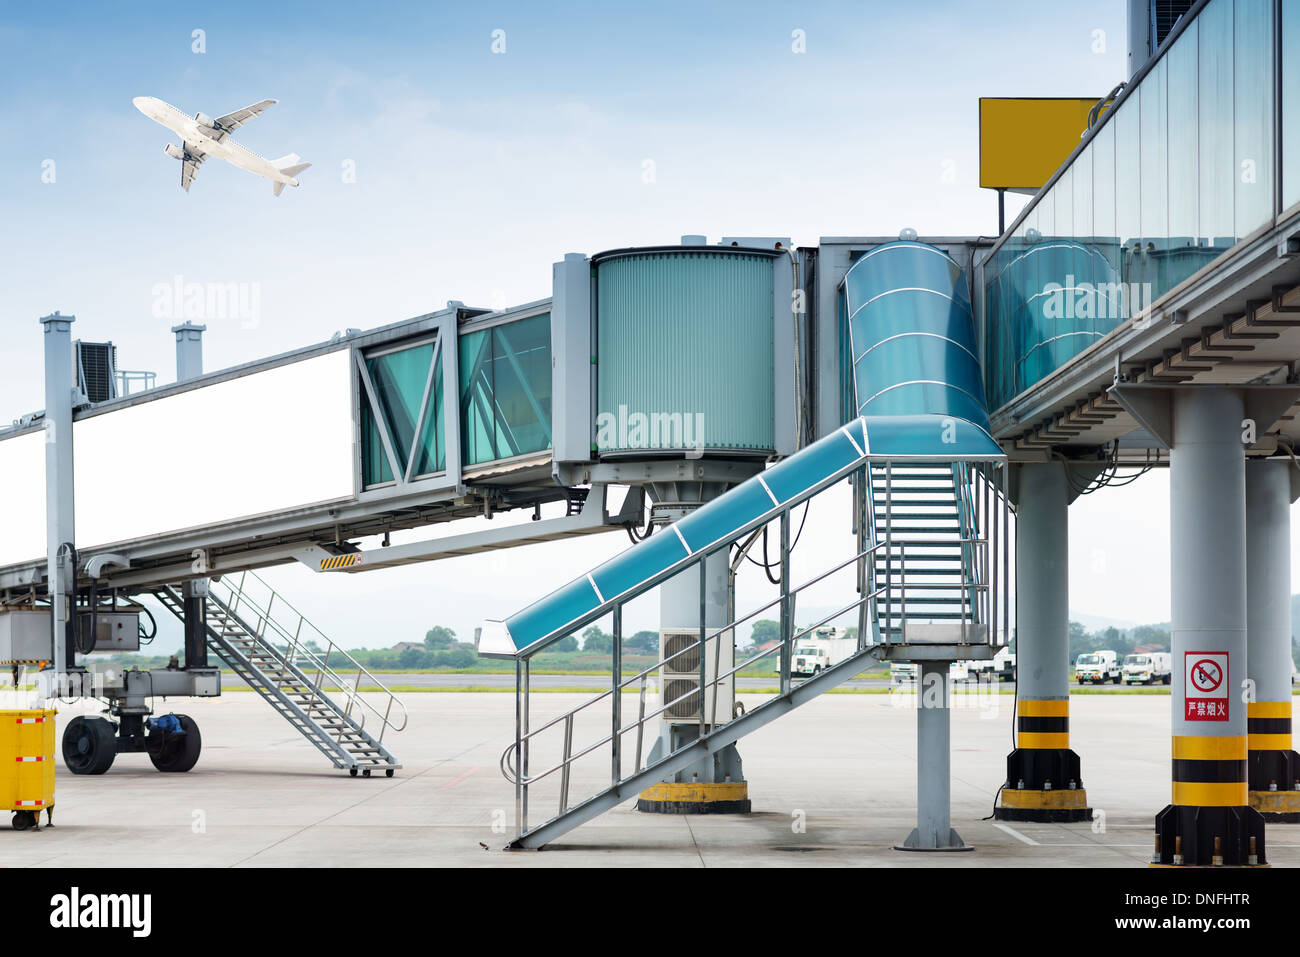 Aerobridge Stock Photos & Aerobridge Stock Images - Alamy